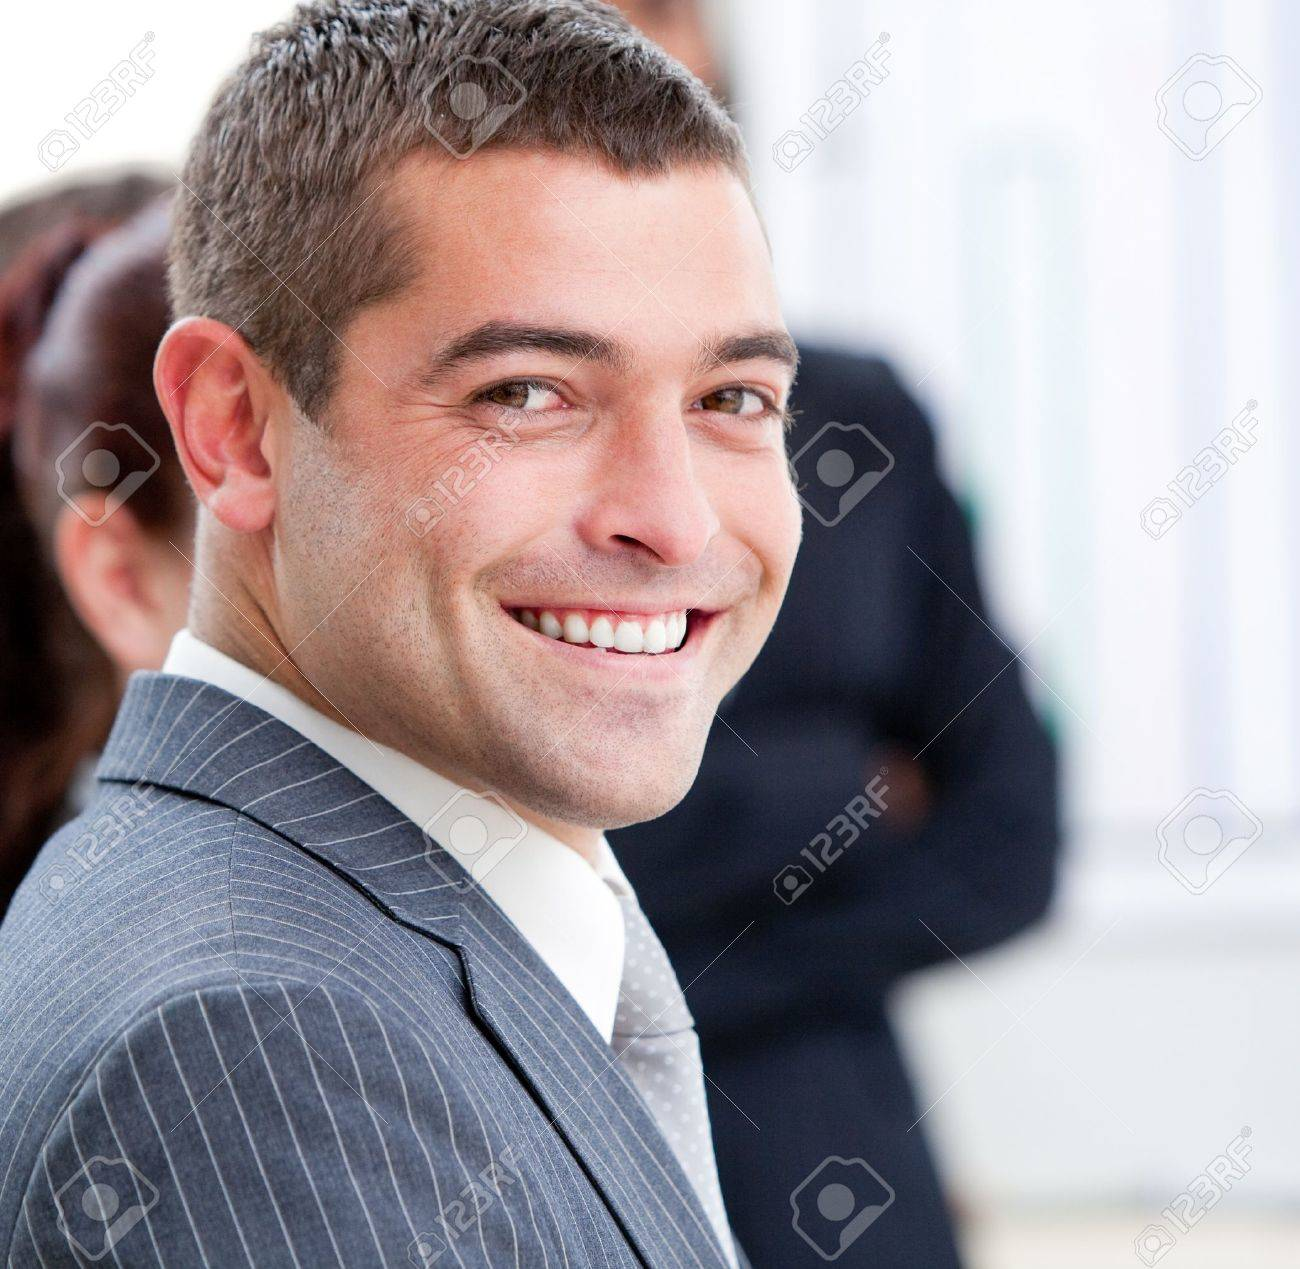 Close-up of a smiling businessman at a presentation Stock Photo - 10249380